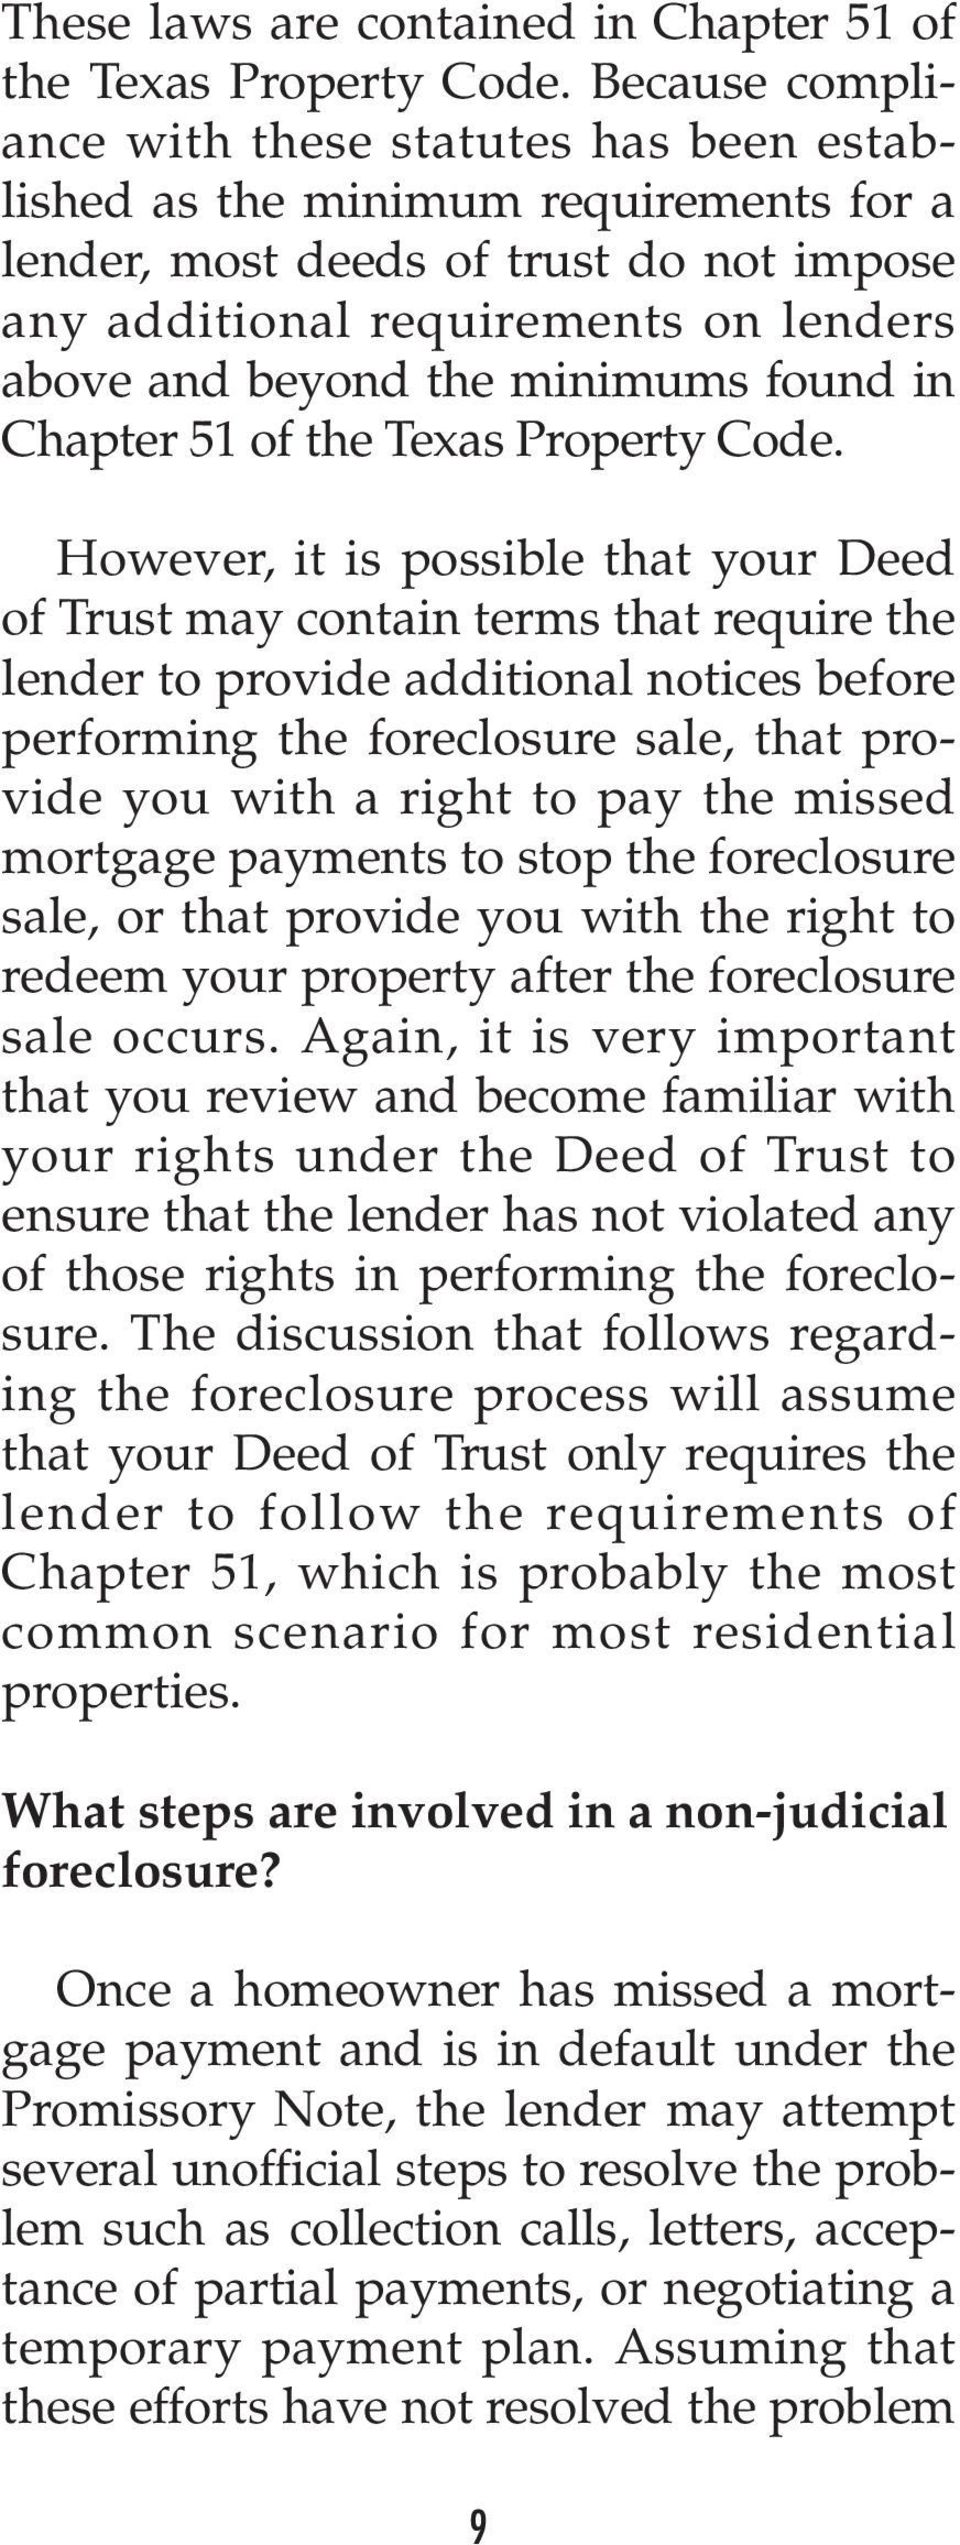 minimums found in Chapter 51 of the Texas Property Code.